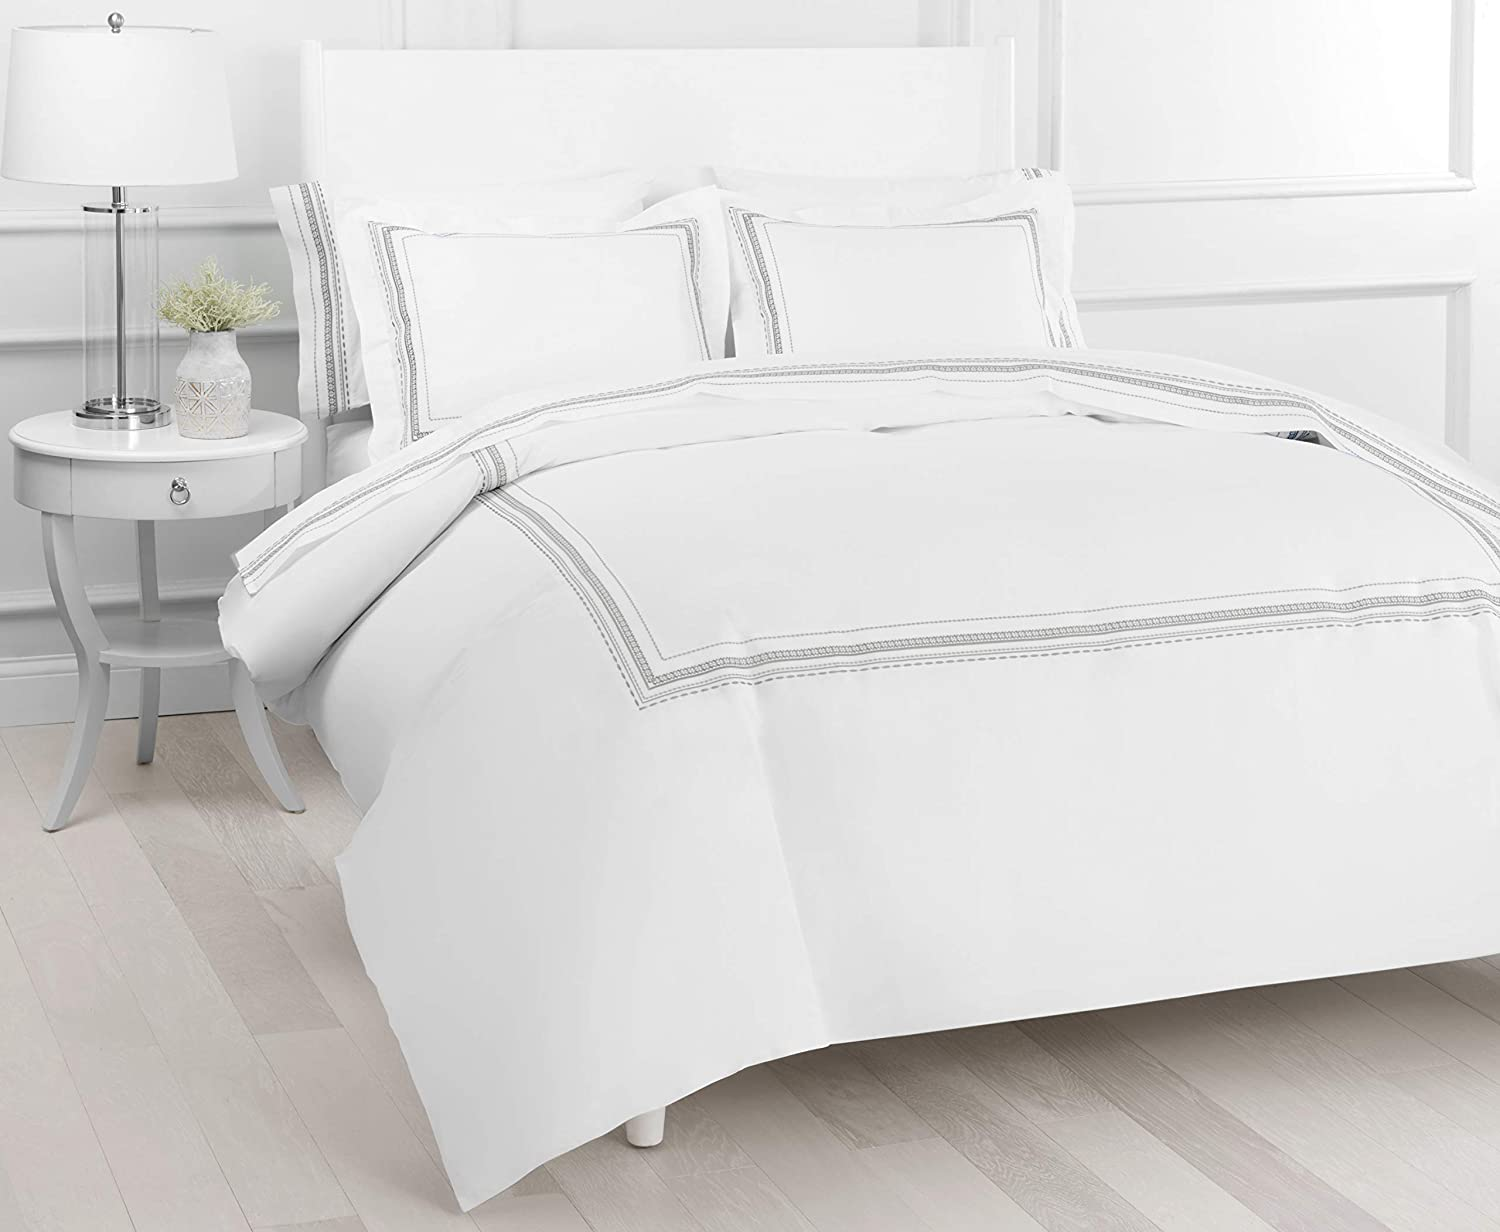 Melange Home Percale Cotton Vinsley Embroidery Duvet Set, Full/Queen, Grey on White